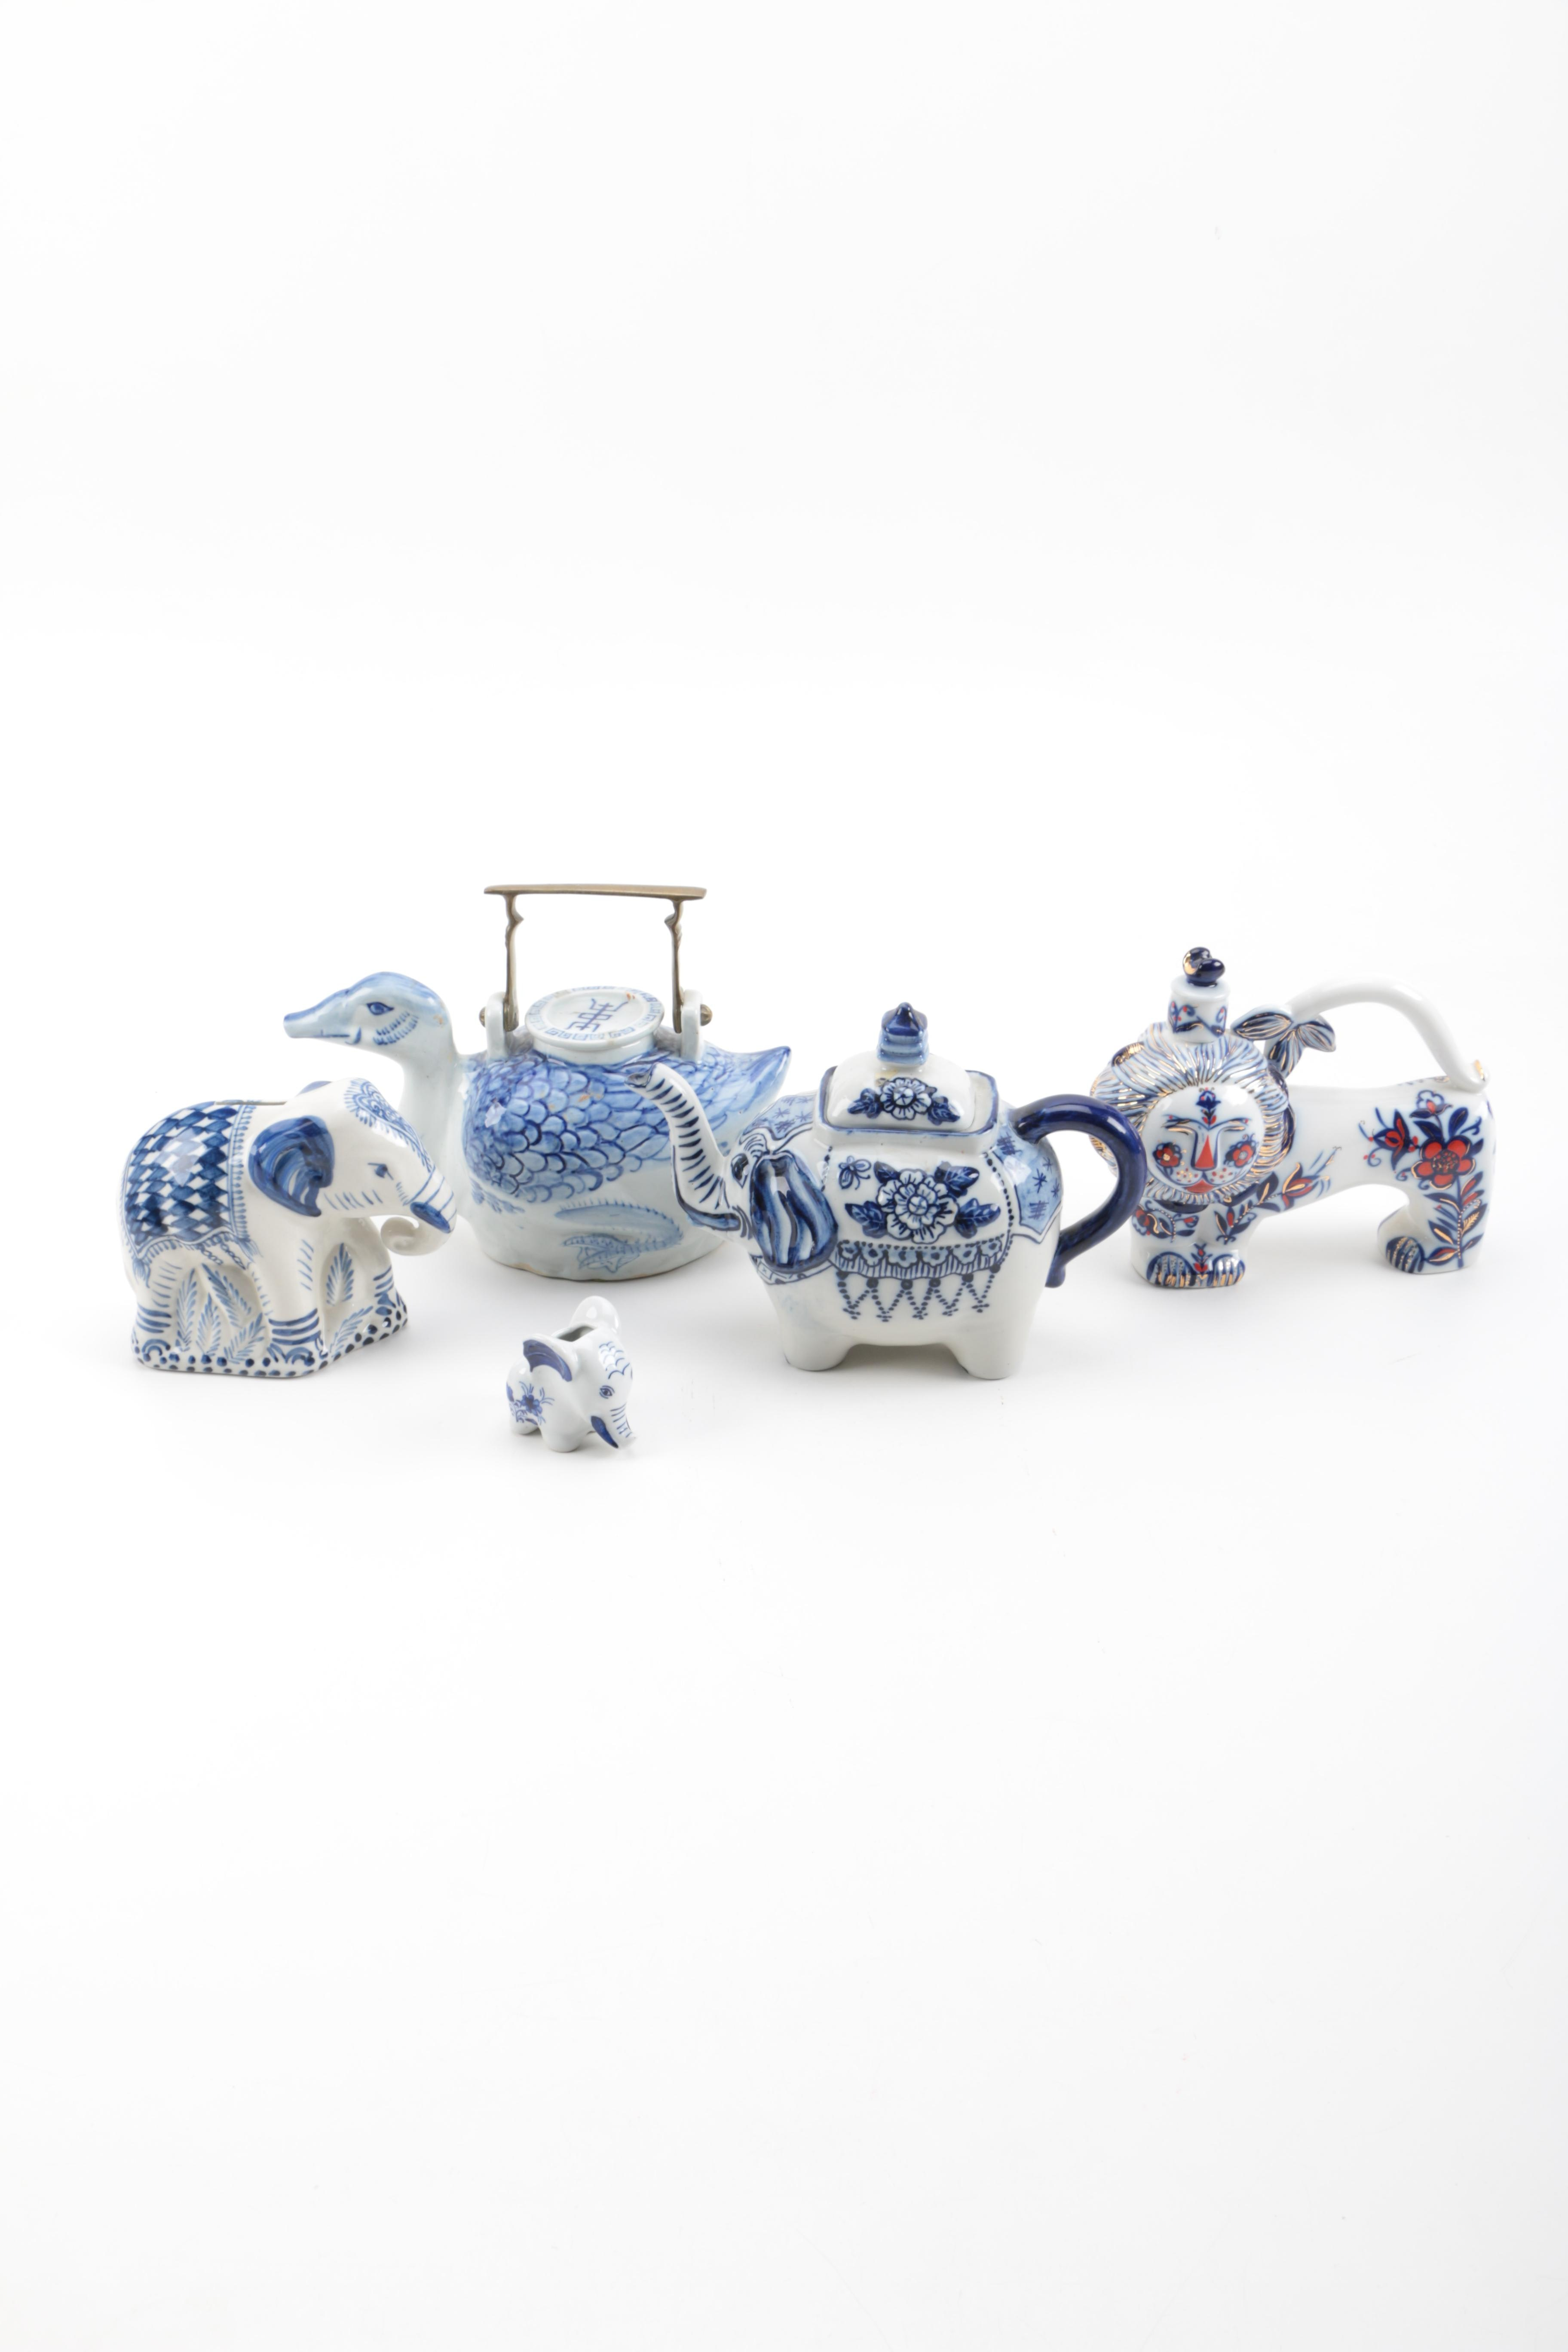 Ceramic Animal Teapots and Decanters